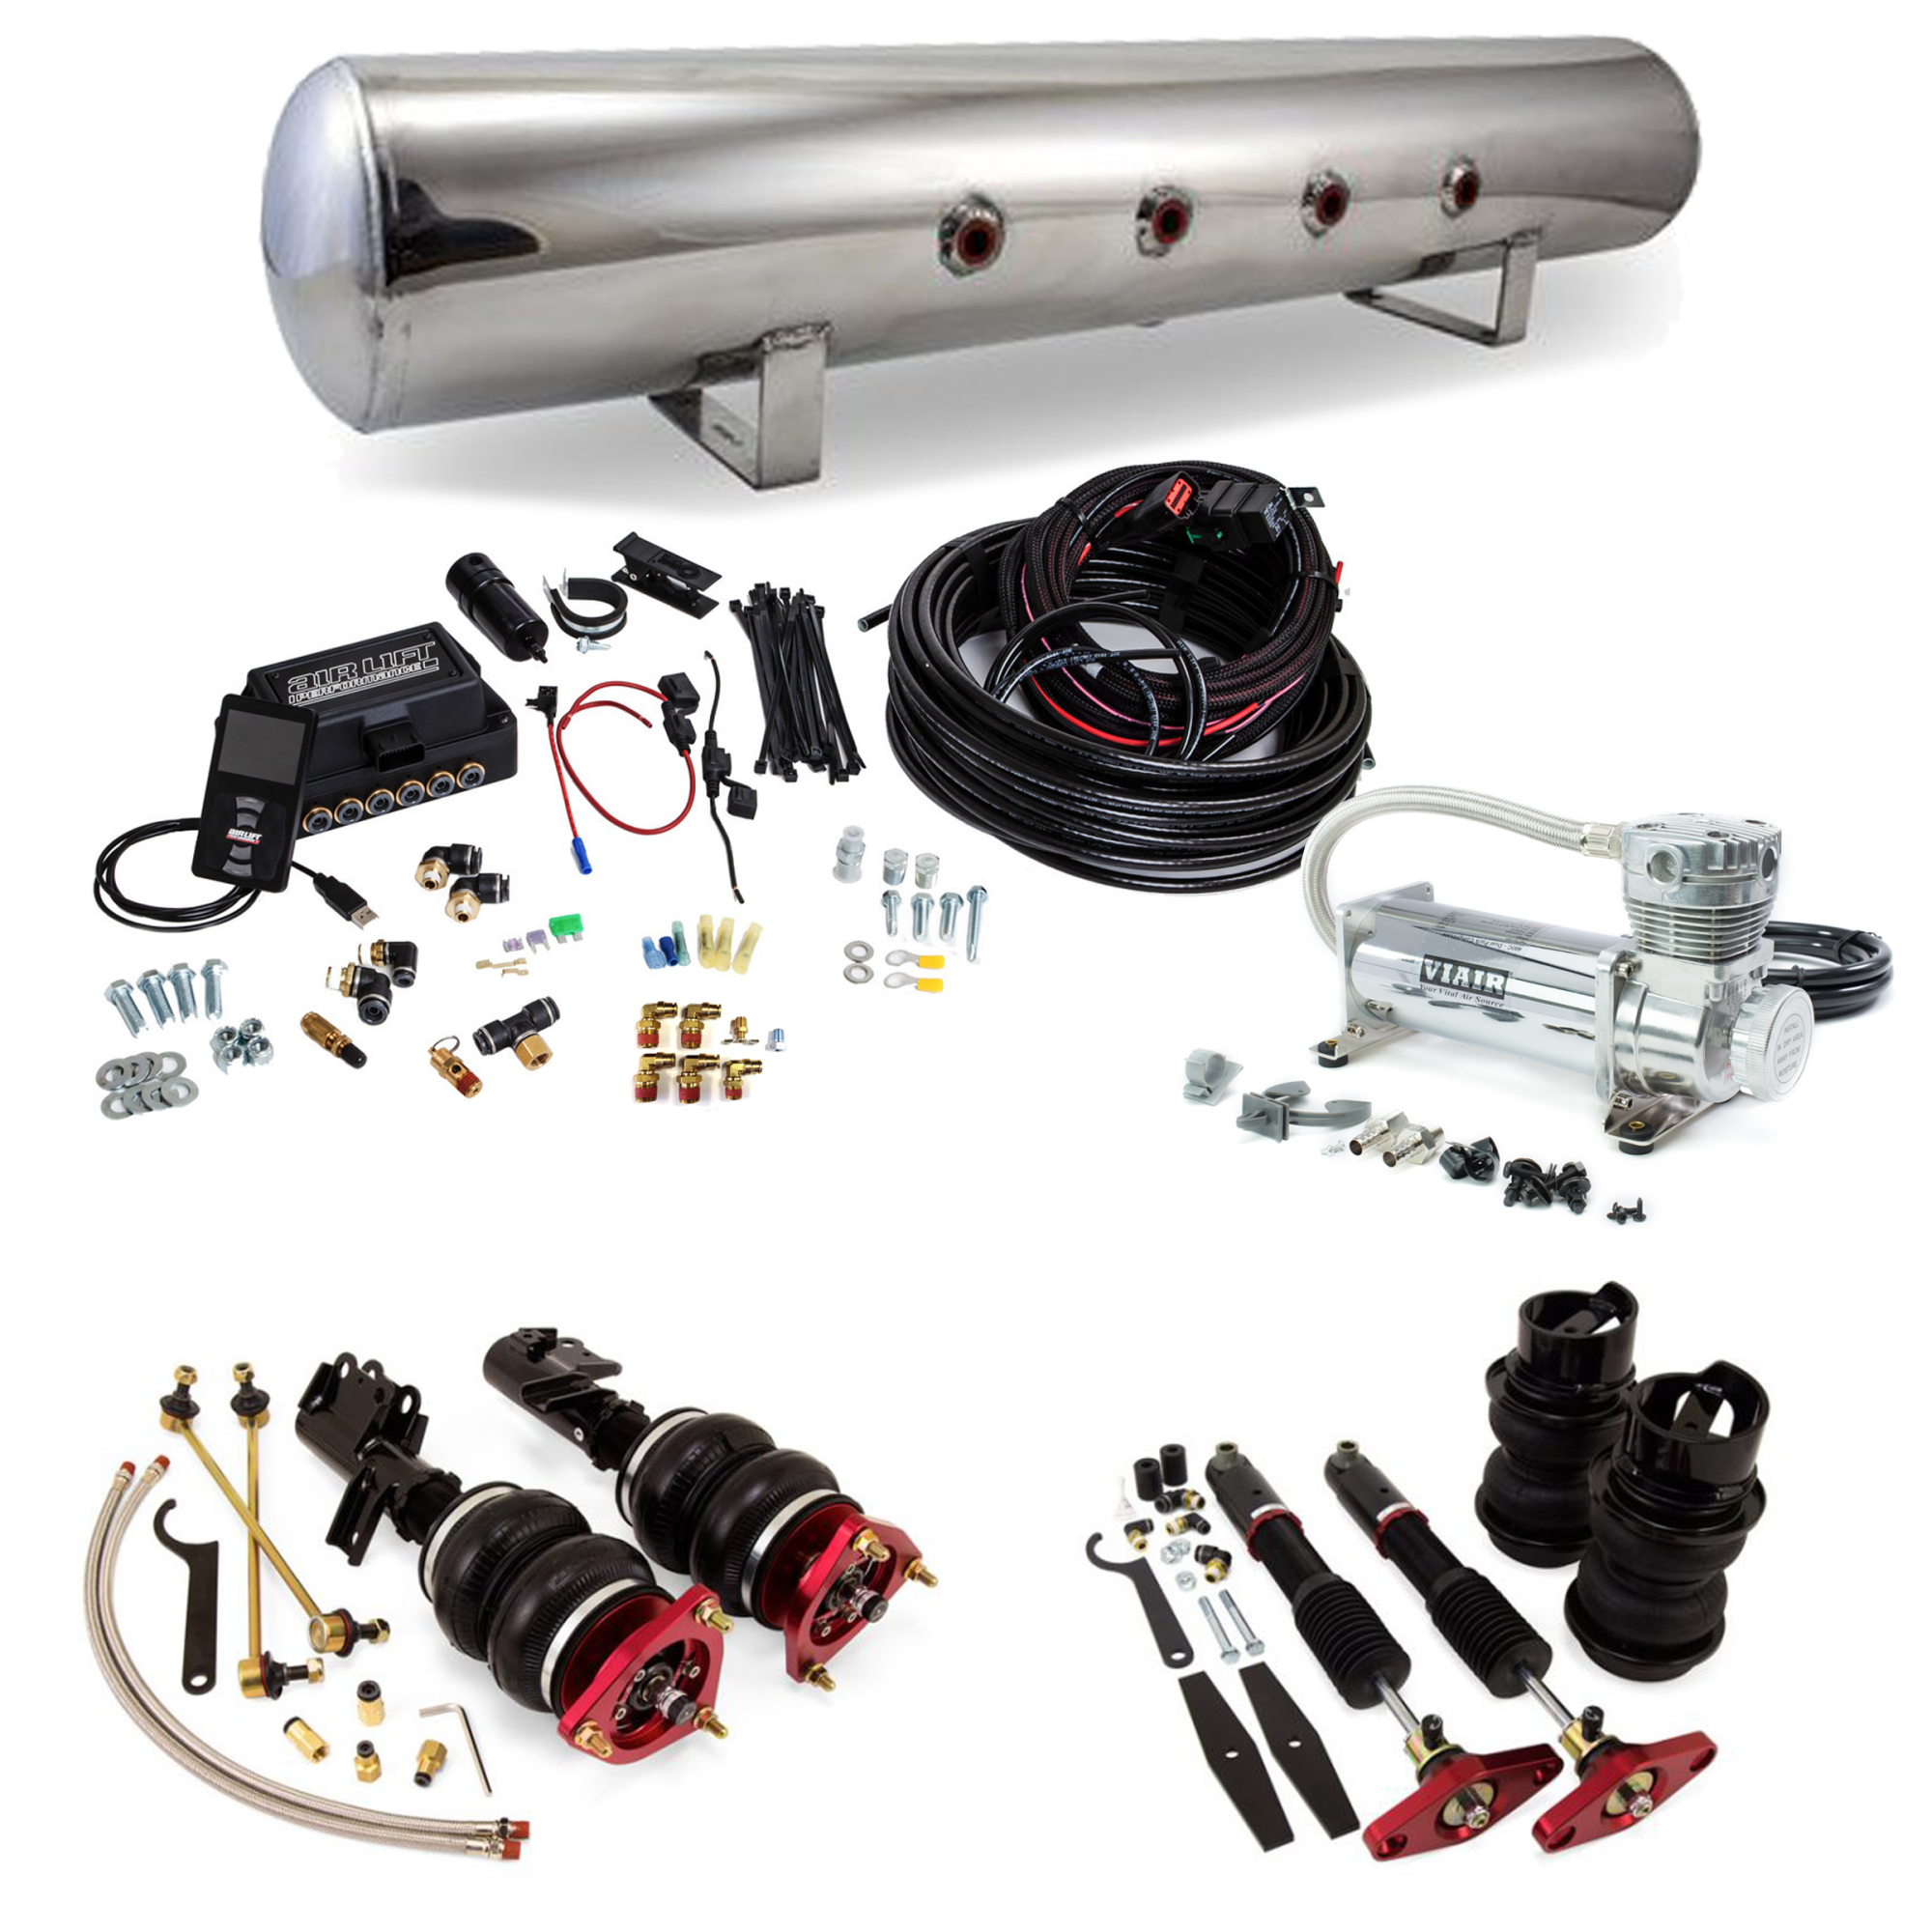 hight resolution of home air suspension systems hyundai air lift stage 3 air suspension system 09 16 hyundai genesis coupe